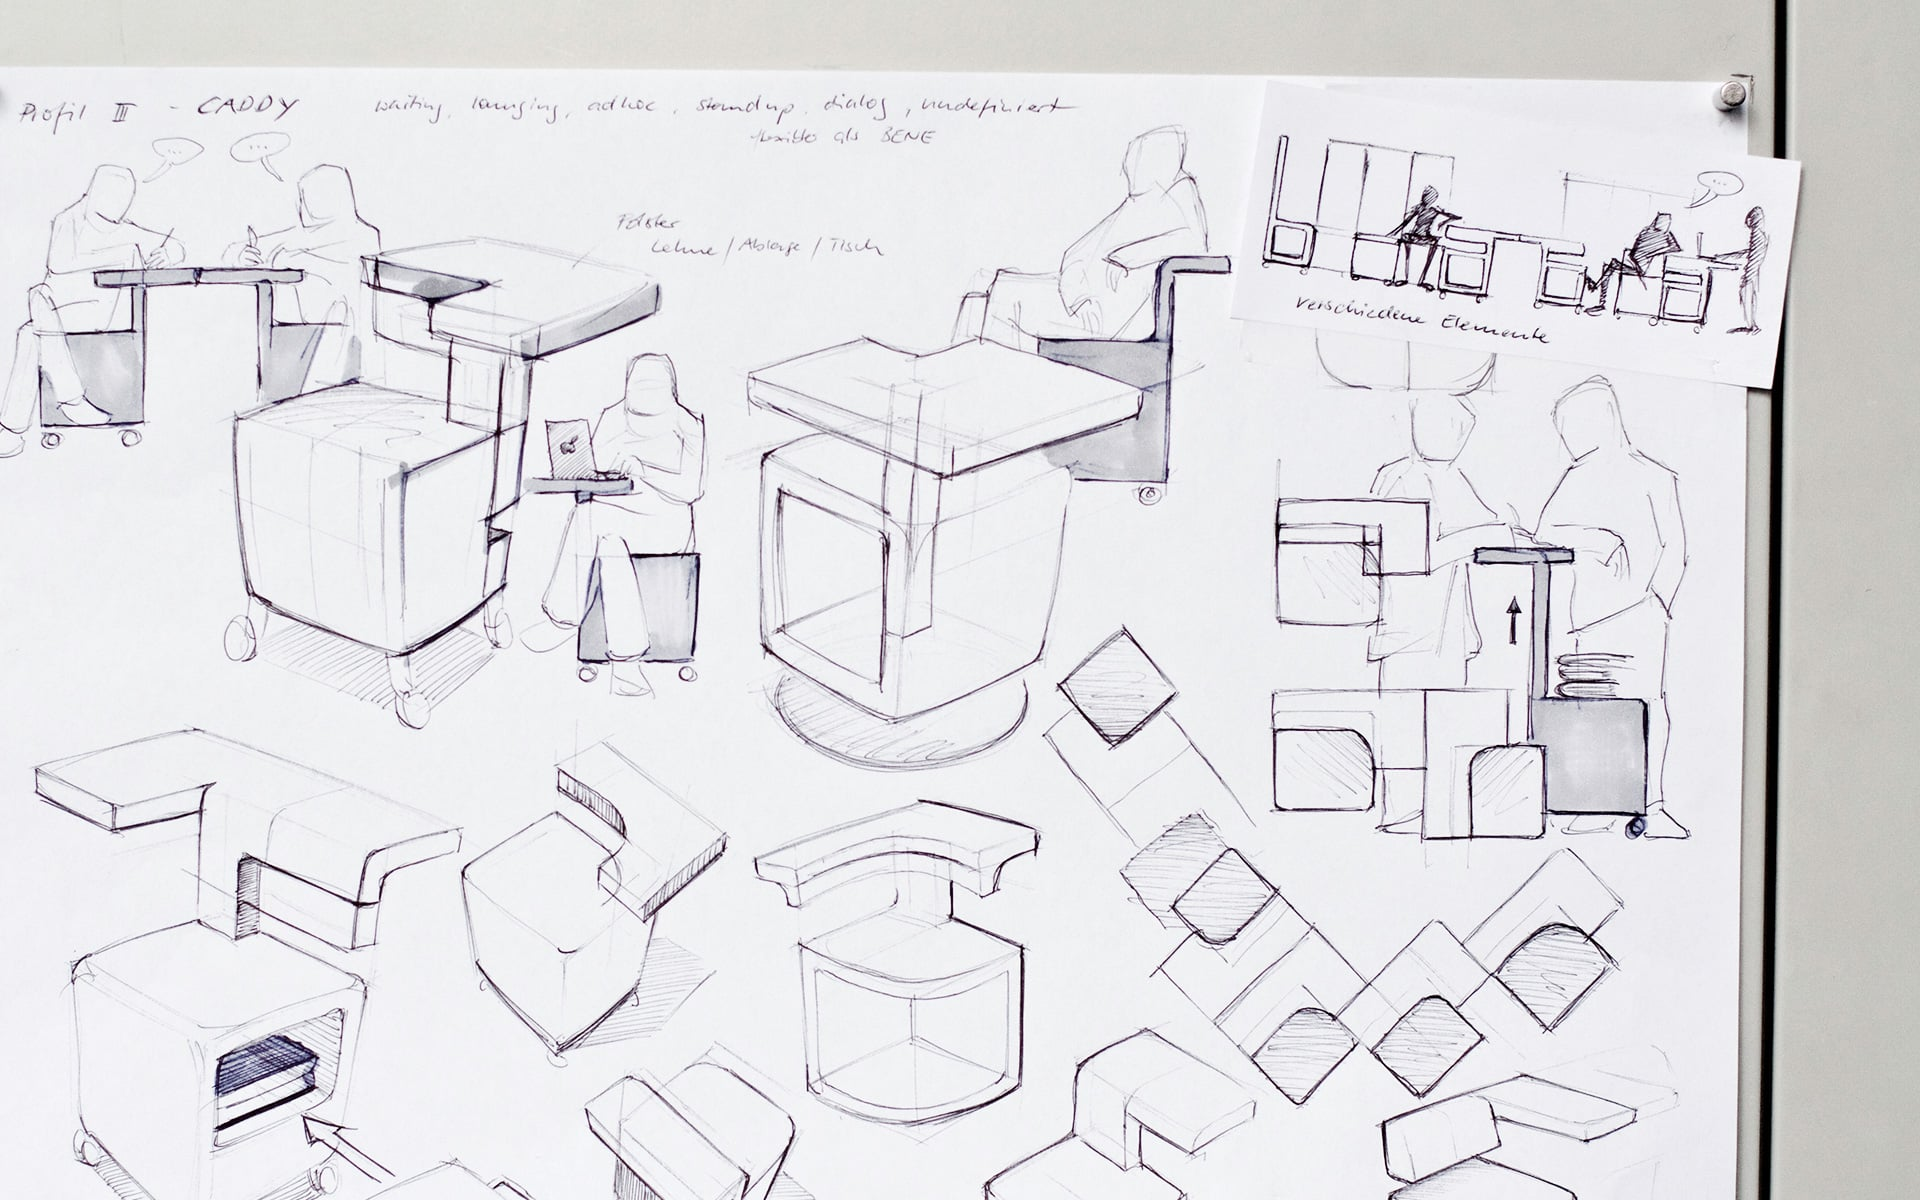 Sketches demonstrate the different possibilities of using a multifunctional ITO Design piece of office furniture